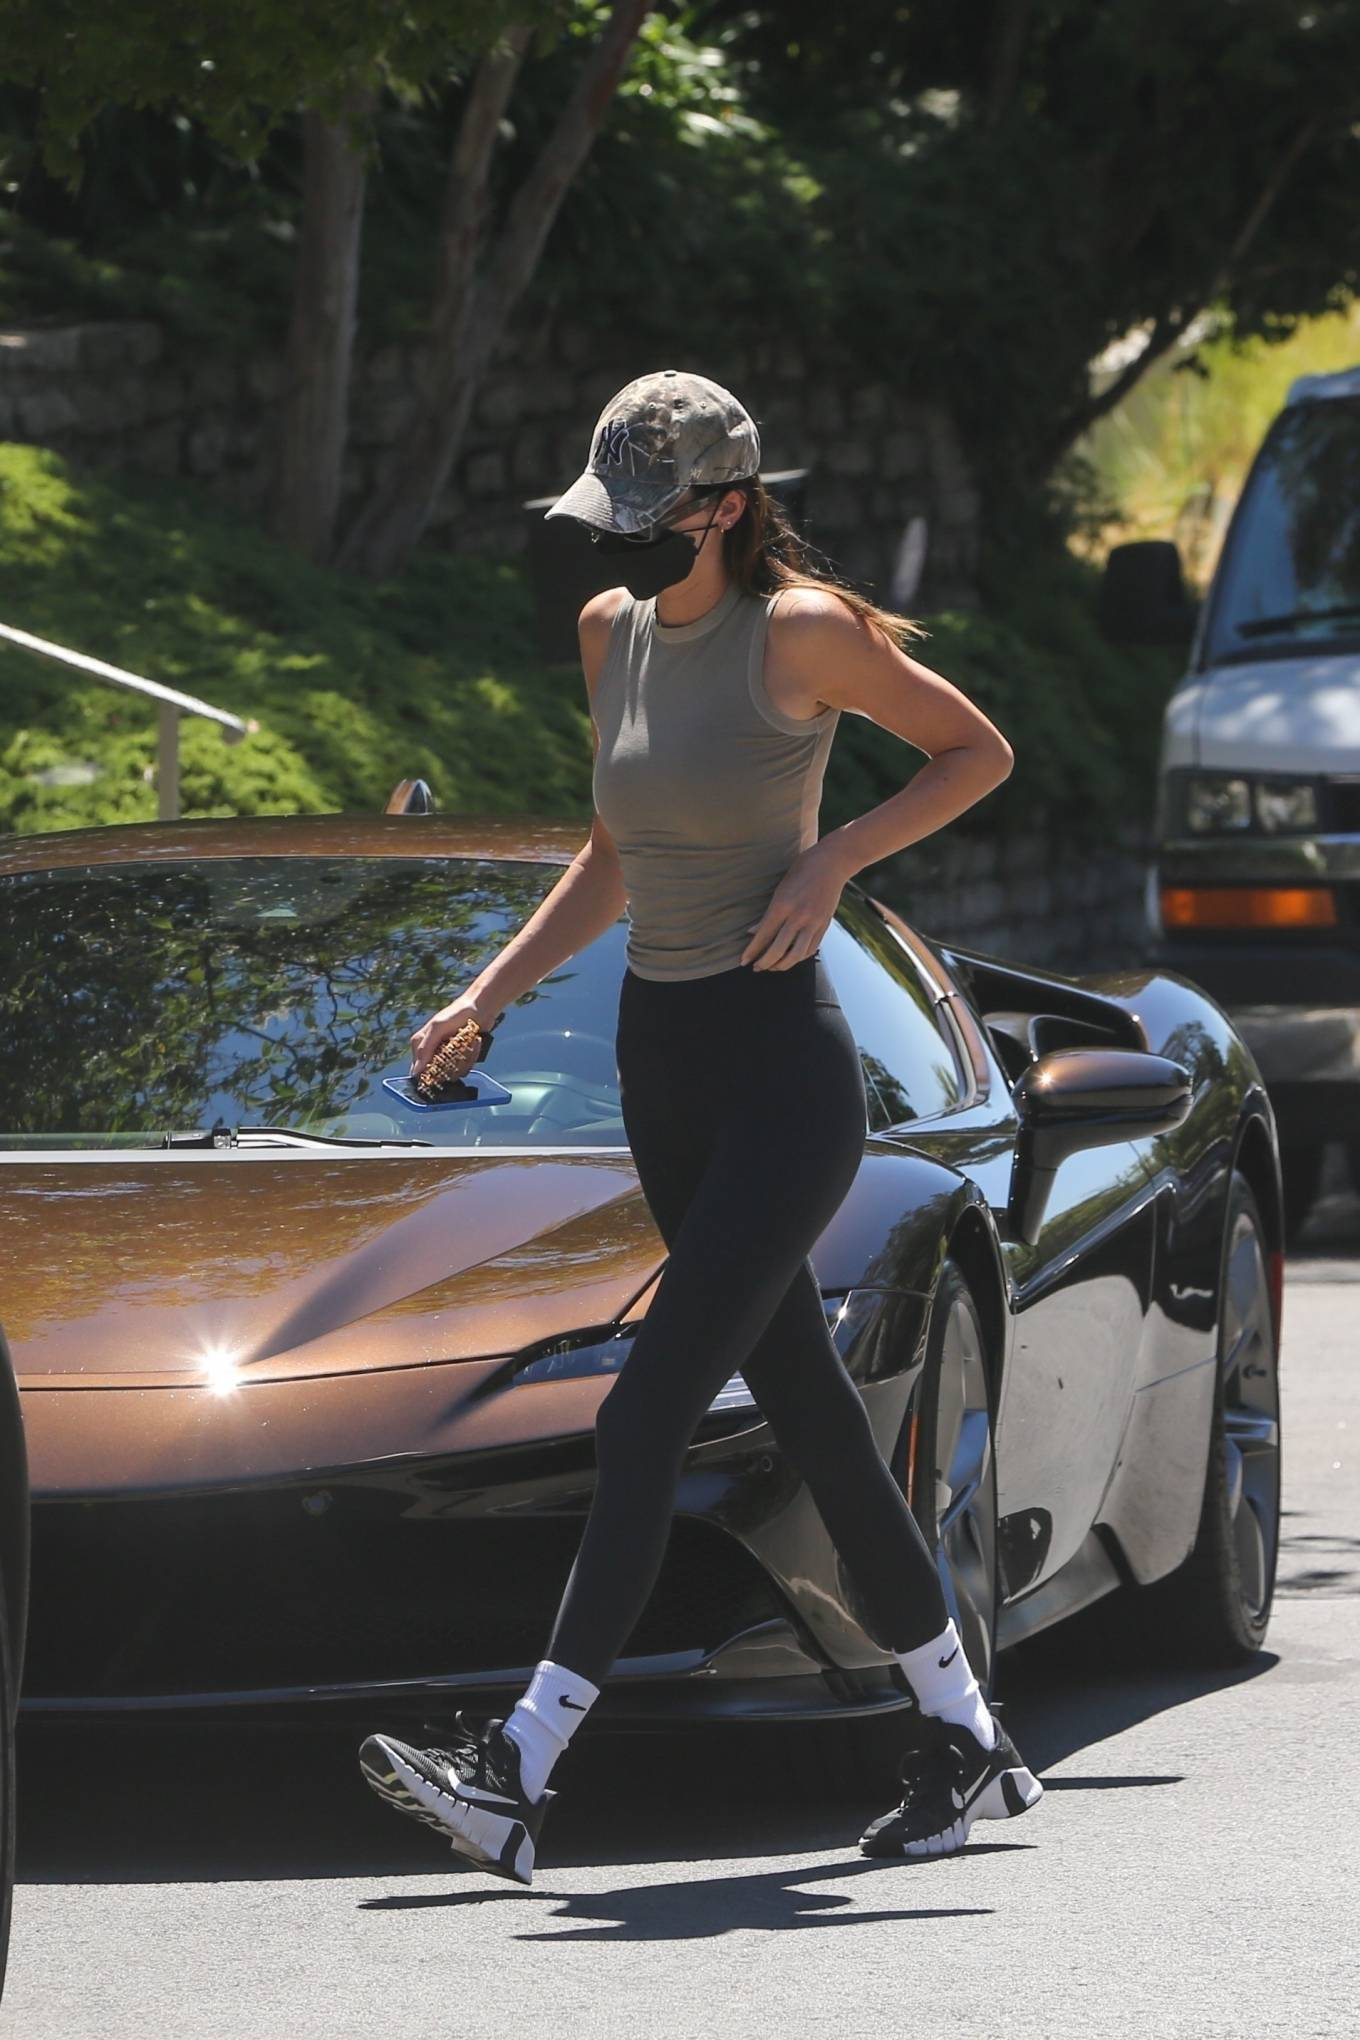 Kendall Jenner, grey top, cotton, SKIMS top, black and white Nike sneakers, black Nike workout leggings, waist length, sleeveless, crew neck, figure hugging, model figure, grey tank top, SKIMS tank top, rose gold Dmy by Dmy sunglasses, fitted, basic. Kendall Jenner donning a figure hugging grey tank top with a cotton fabric and a crew neck